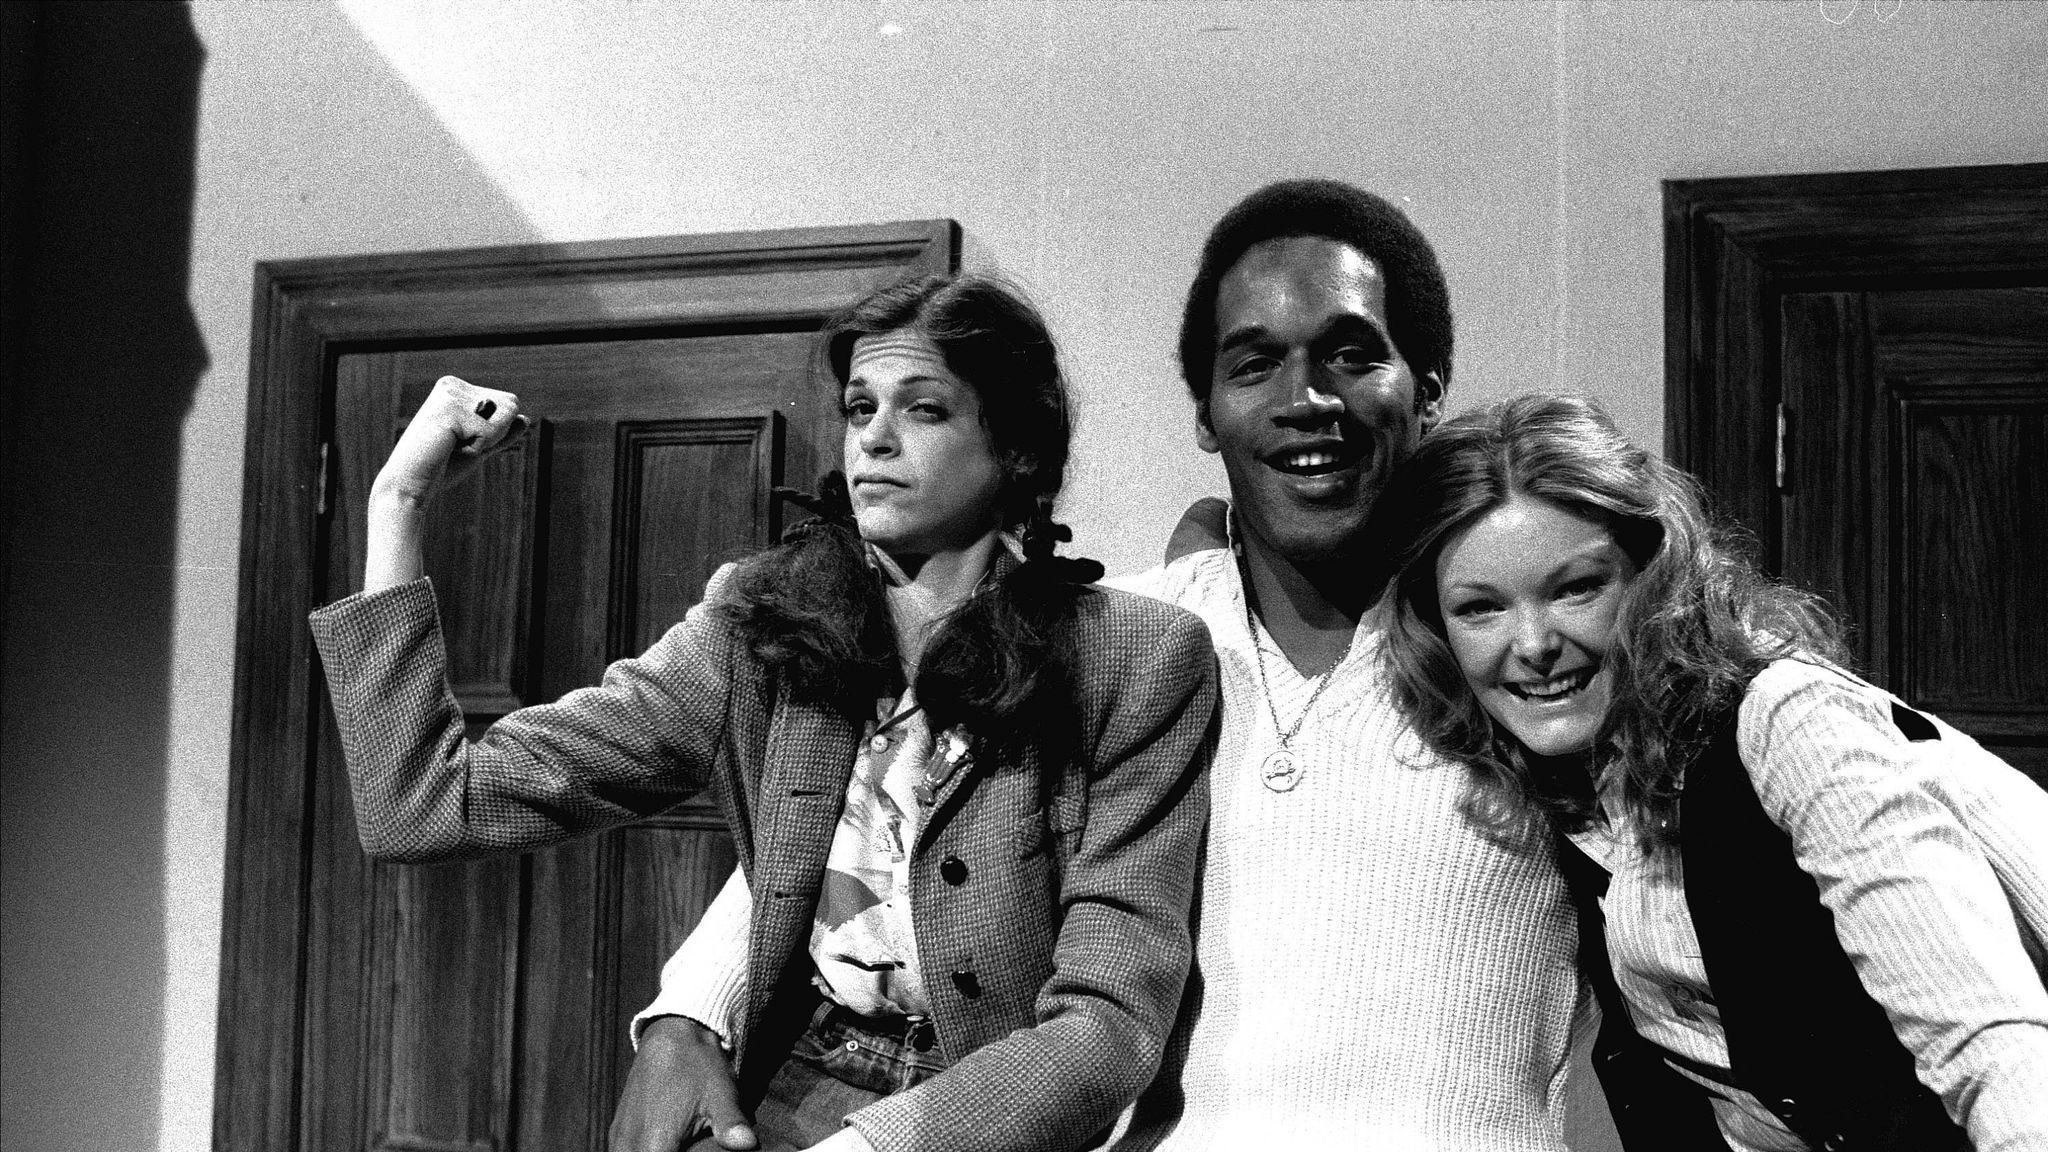 """O.J. Simpson, center, poses with actresses Gilda Radner, left, and Jane Curtin while appearing on NBC's """"Saturday Night Live"""" in 1978."""